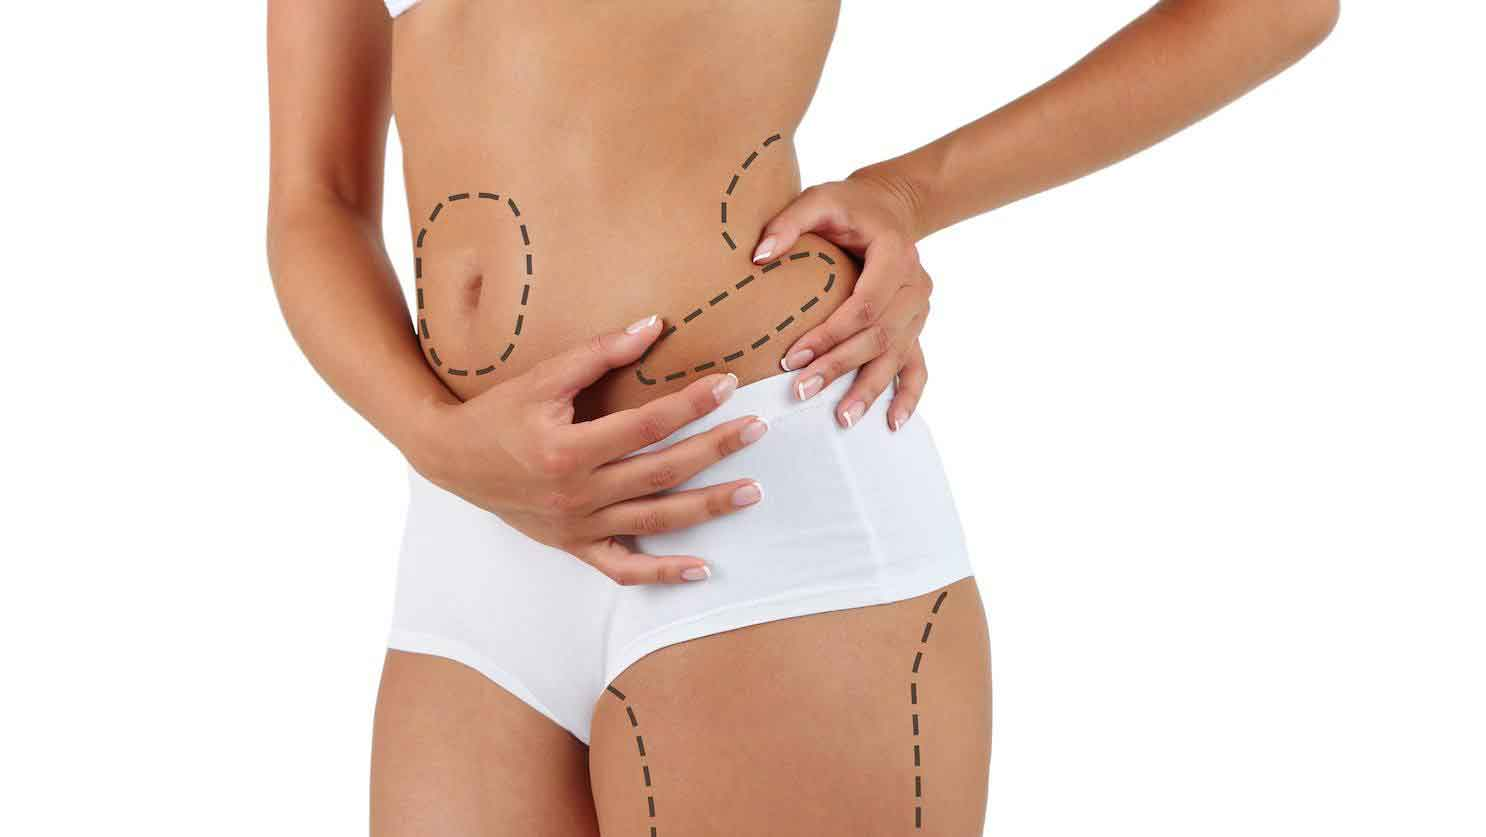 How much does liposuction cost for your stomach 2